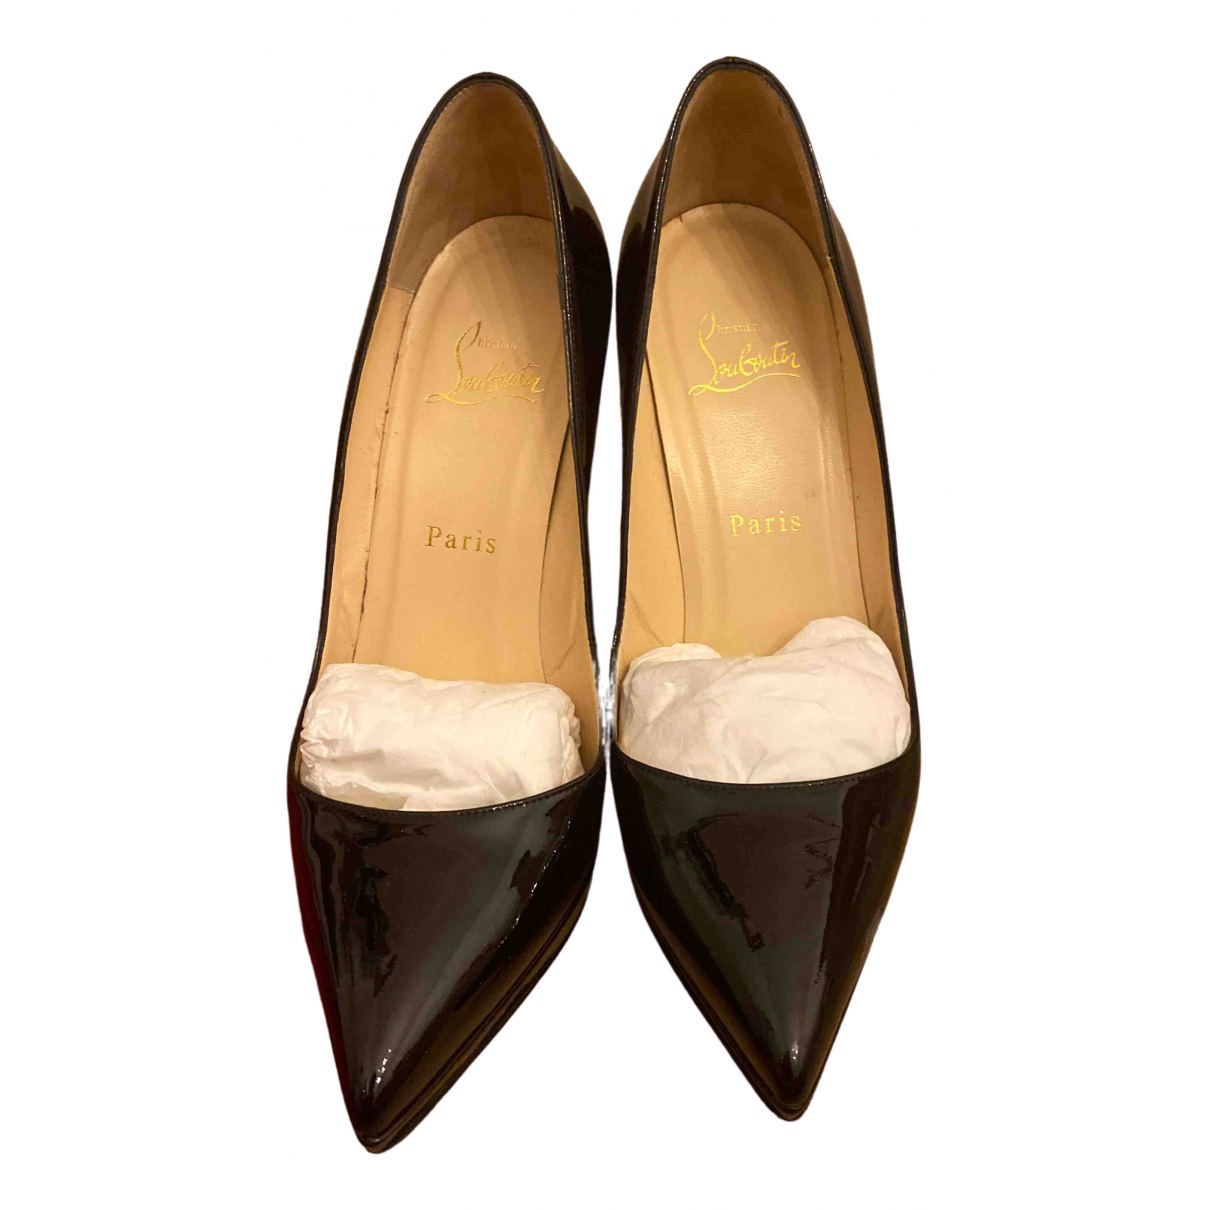 Christian Louboutin Pigalle Black Patent leather Heels for Women 38 EU